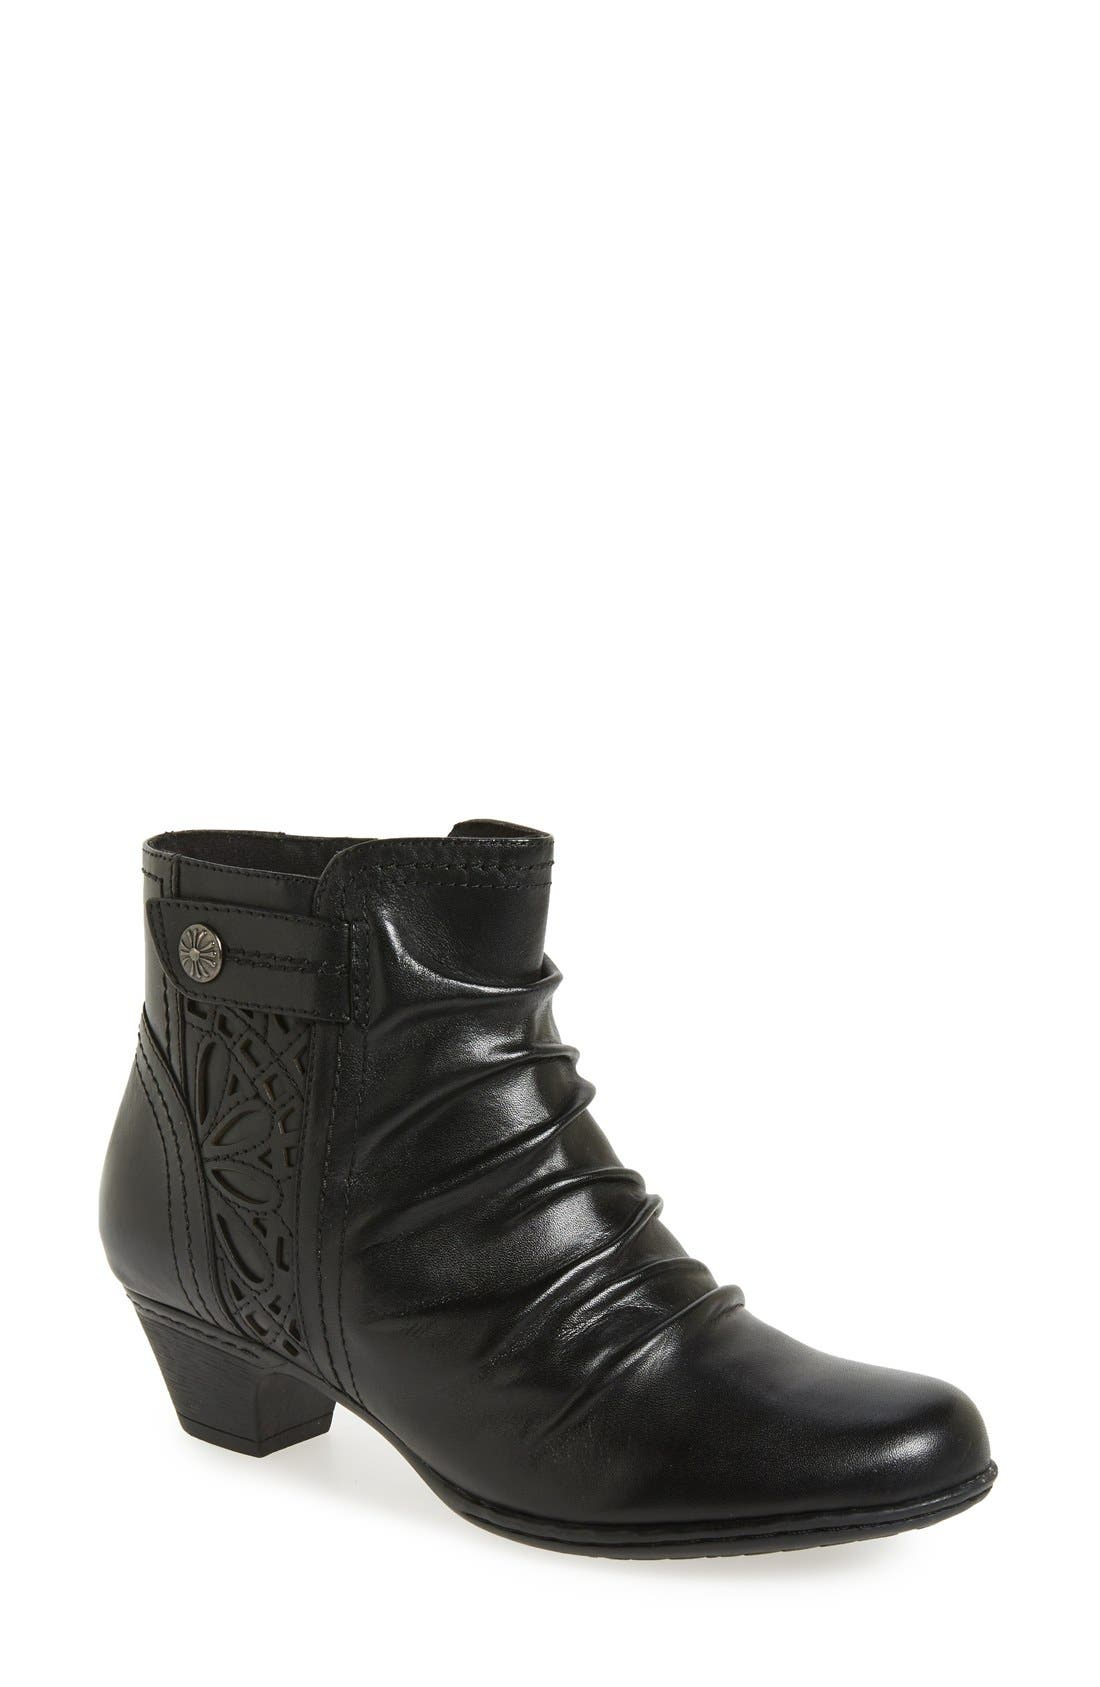 'Abilene' Bootie,                             Main thumbnail 1, color,                             BLACK LEATHER